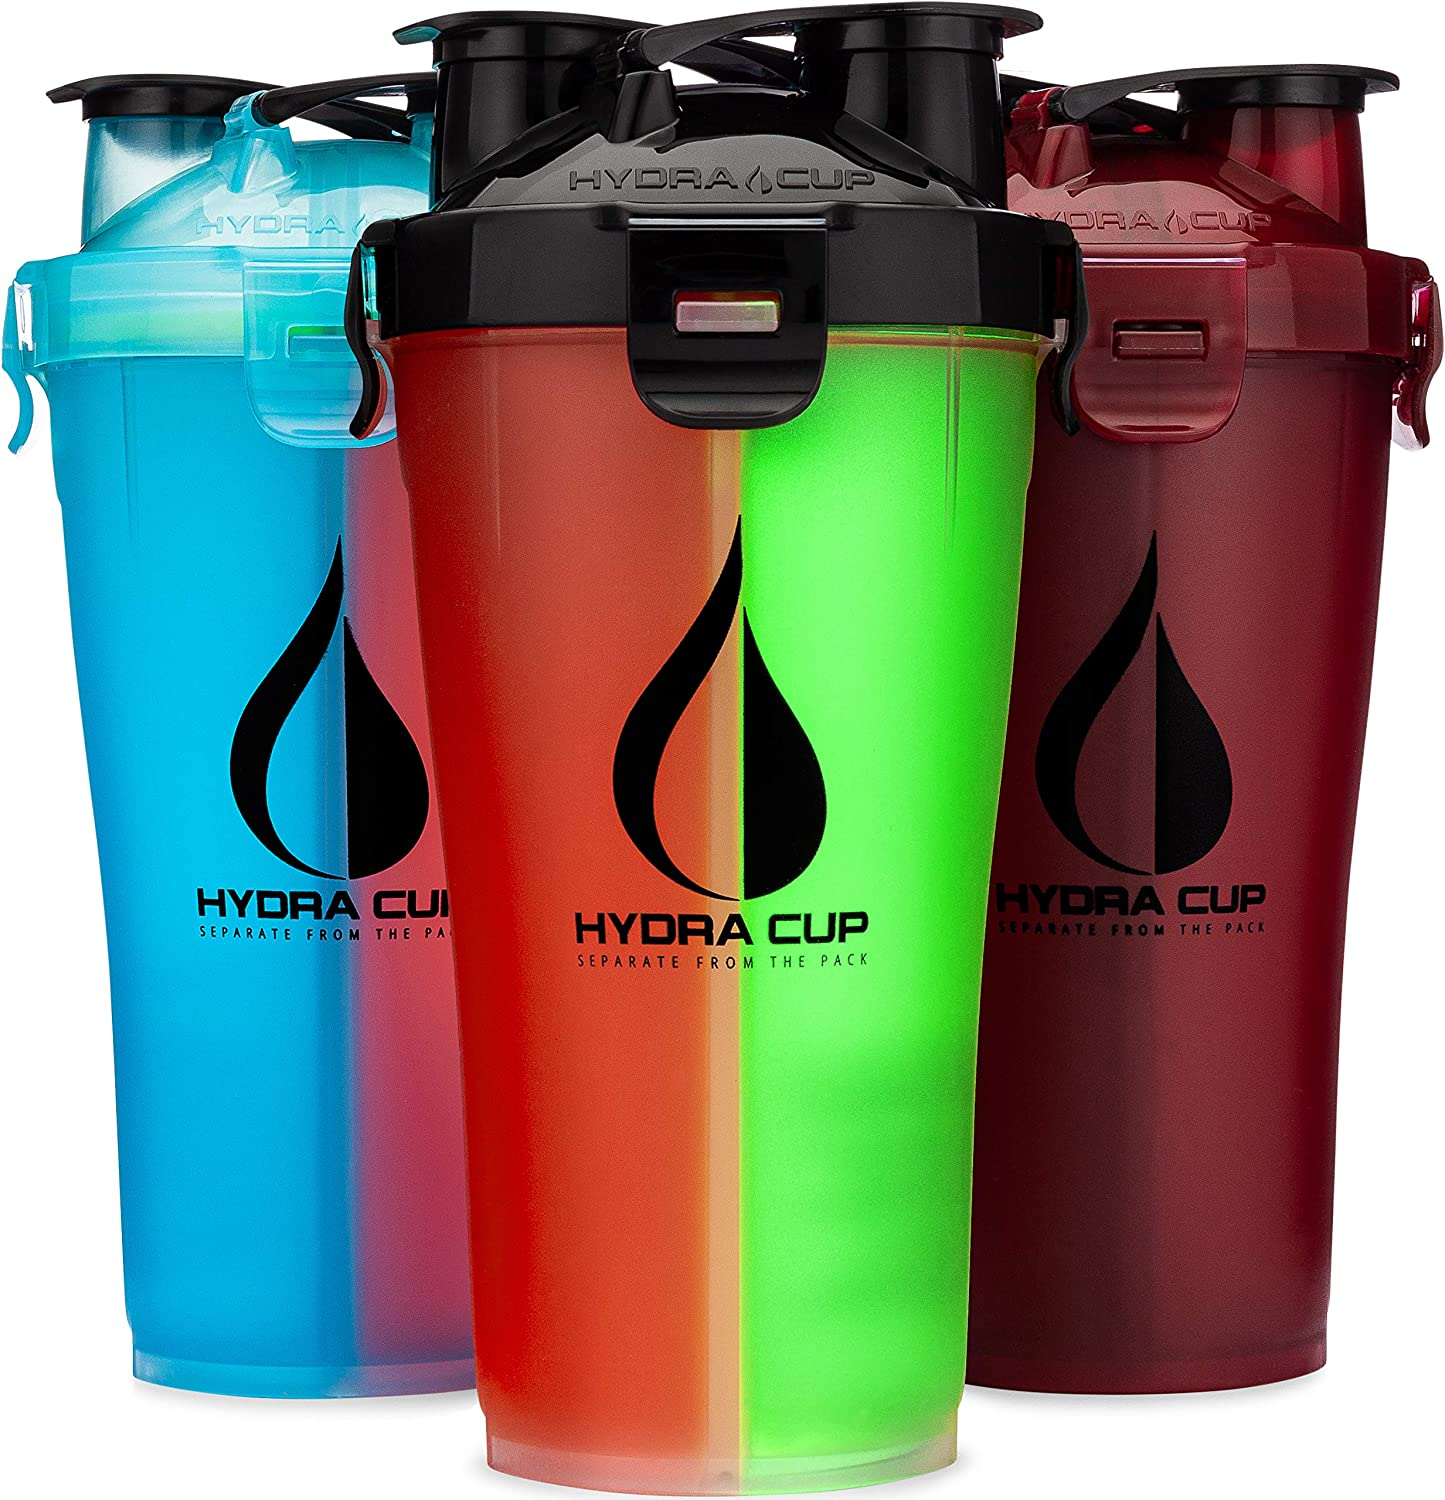 Hydra Cup [3 Pack] 30oz Dual Threat Shaker Bottle, 2-in-1 Protein Blender Cup for Pre & Post, Save Time